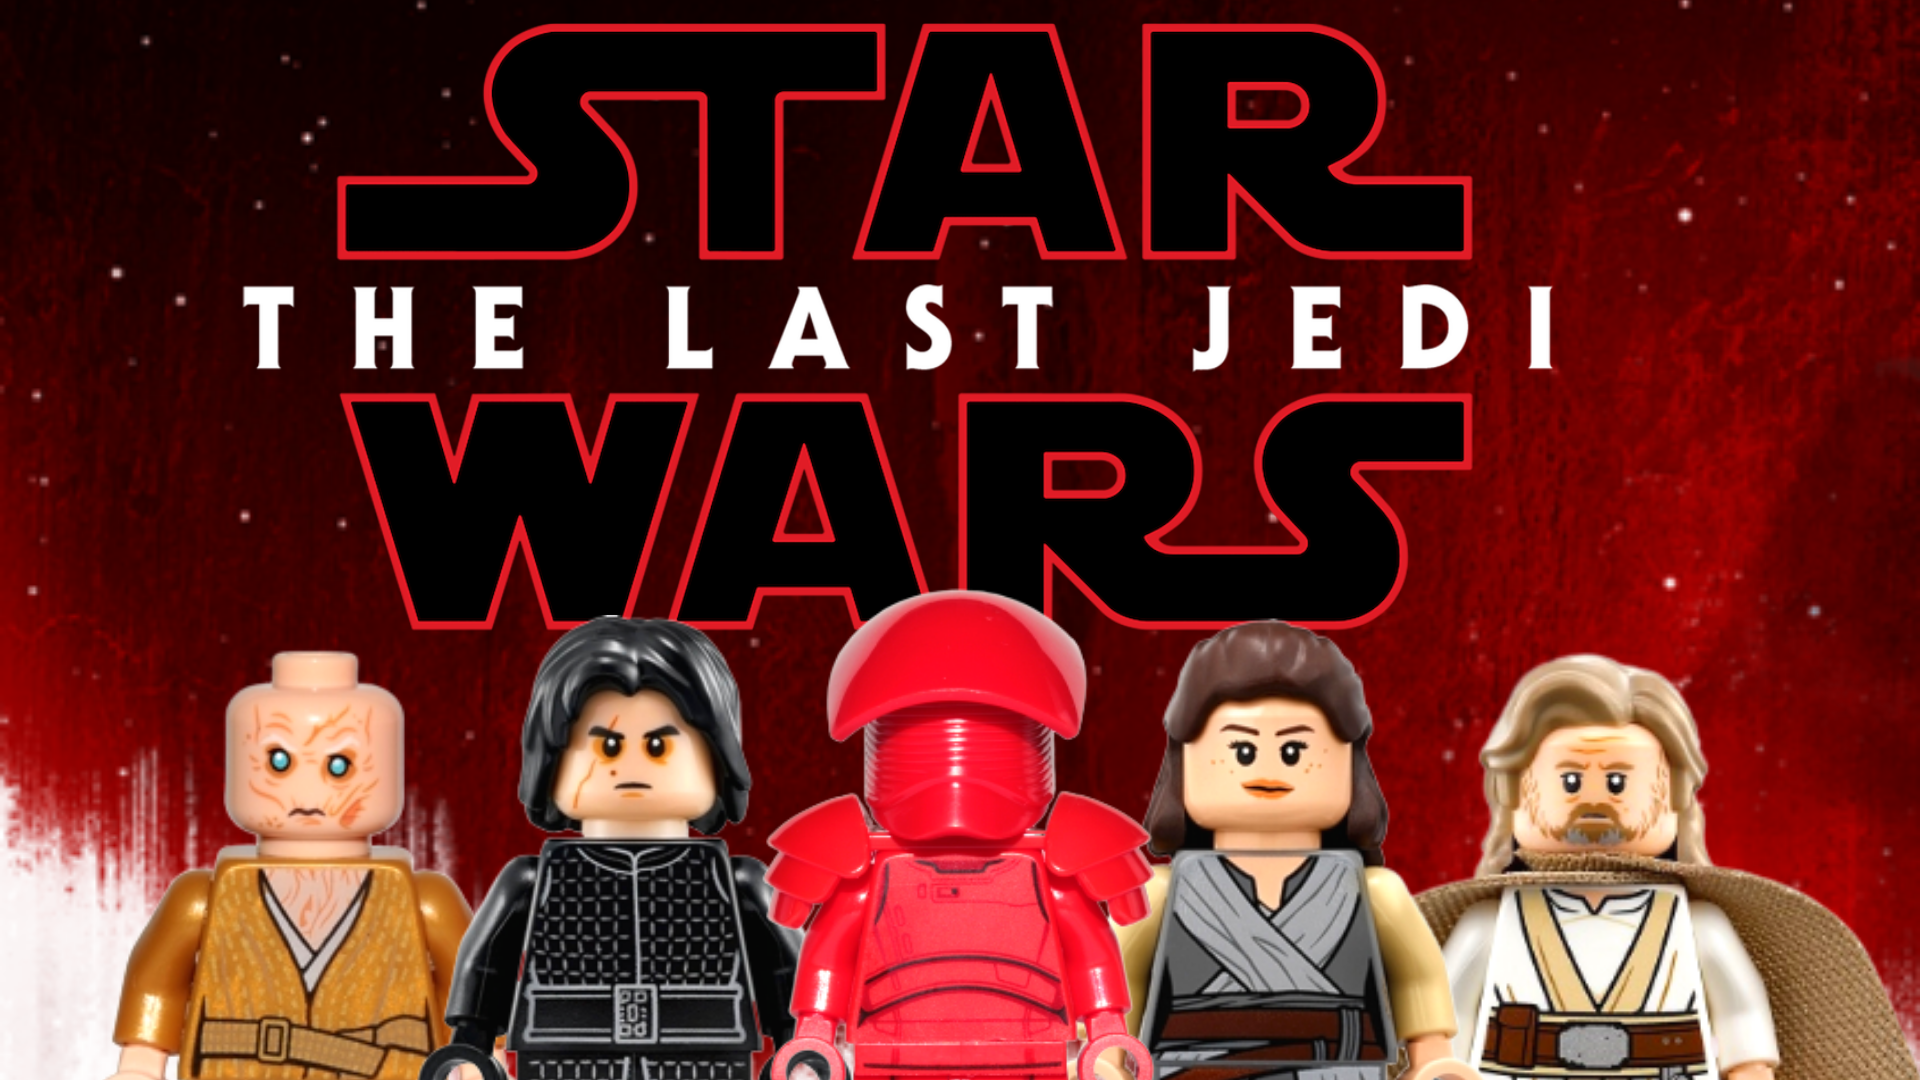 The Last Jedi All Lego Star Wars Minifigures From Episode 8